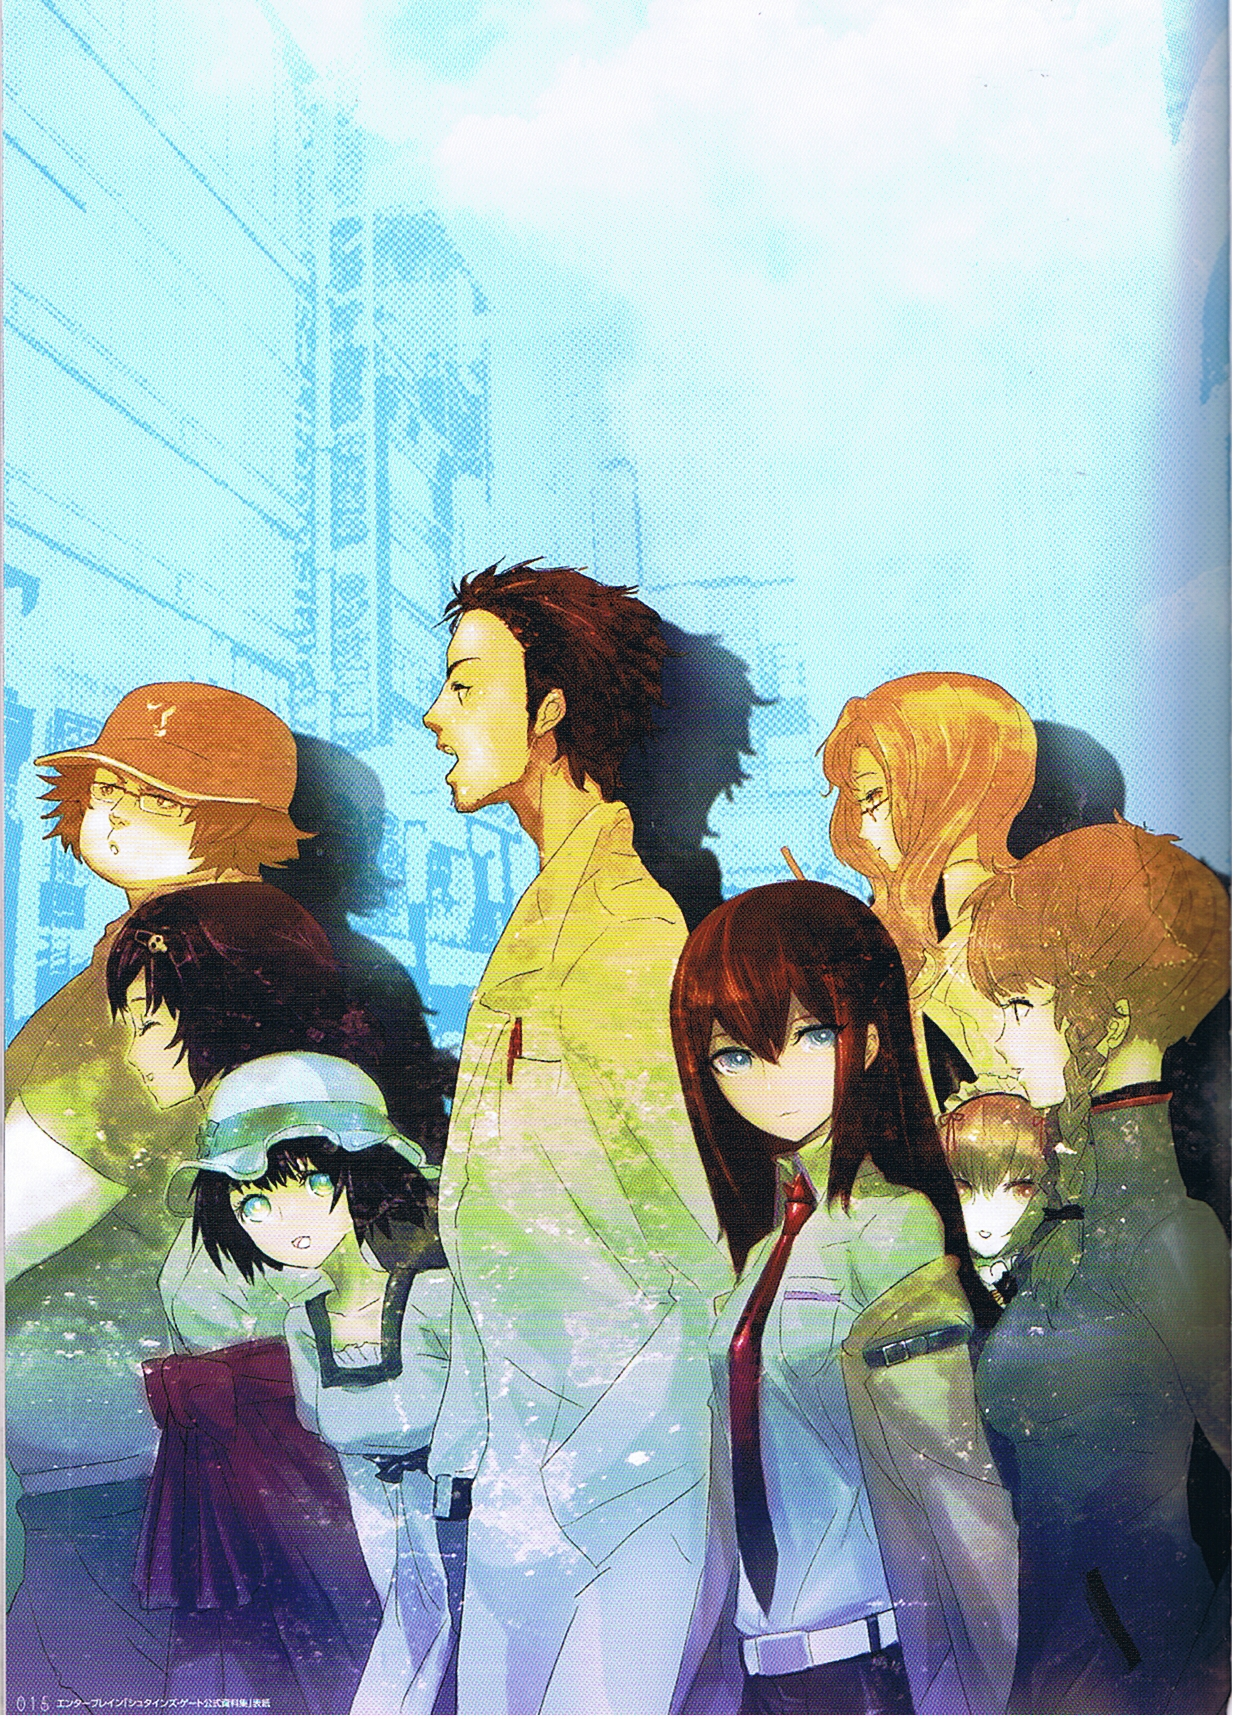 Wallpapers Anime Girl Cute Artbook Steins Gate